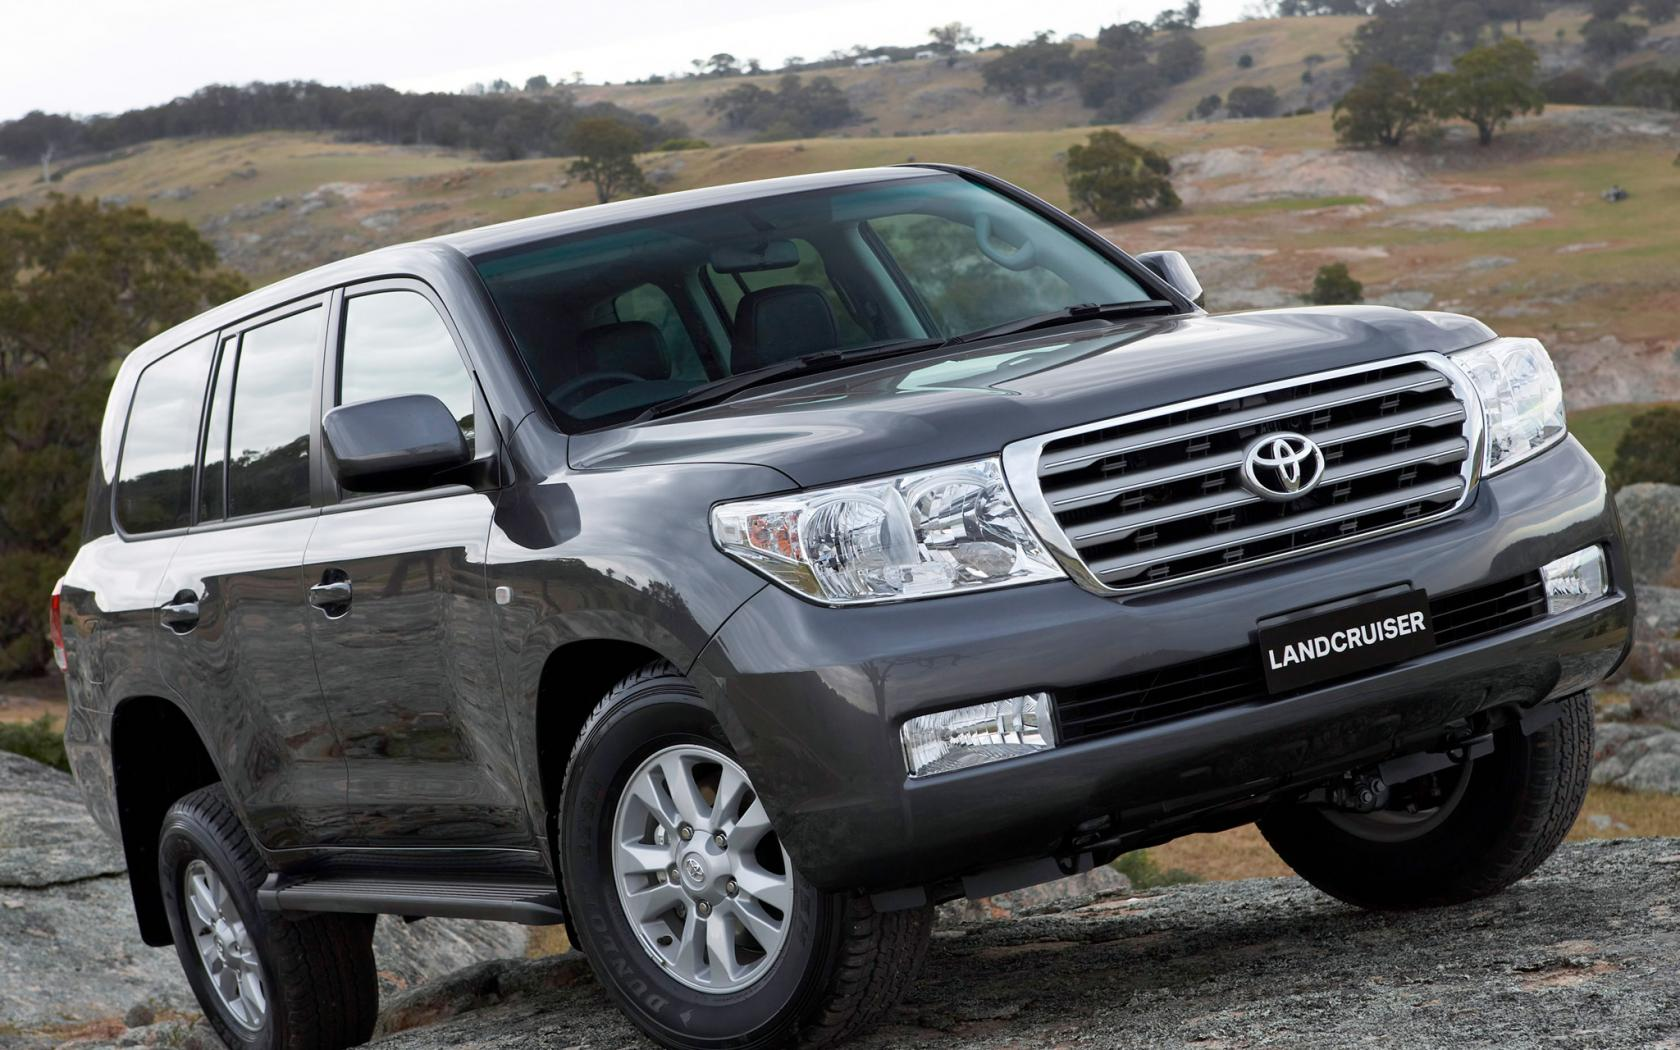 Toyota Land Cruiser 200. View Download Wallpaper. 1680x1050. Comments